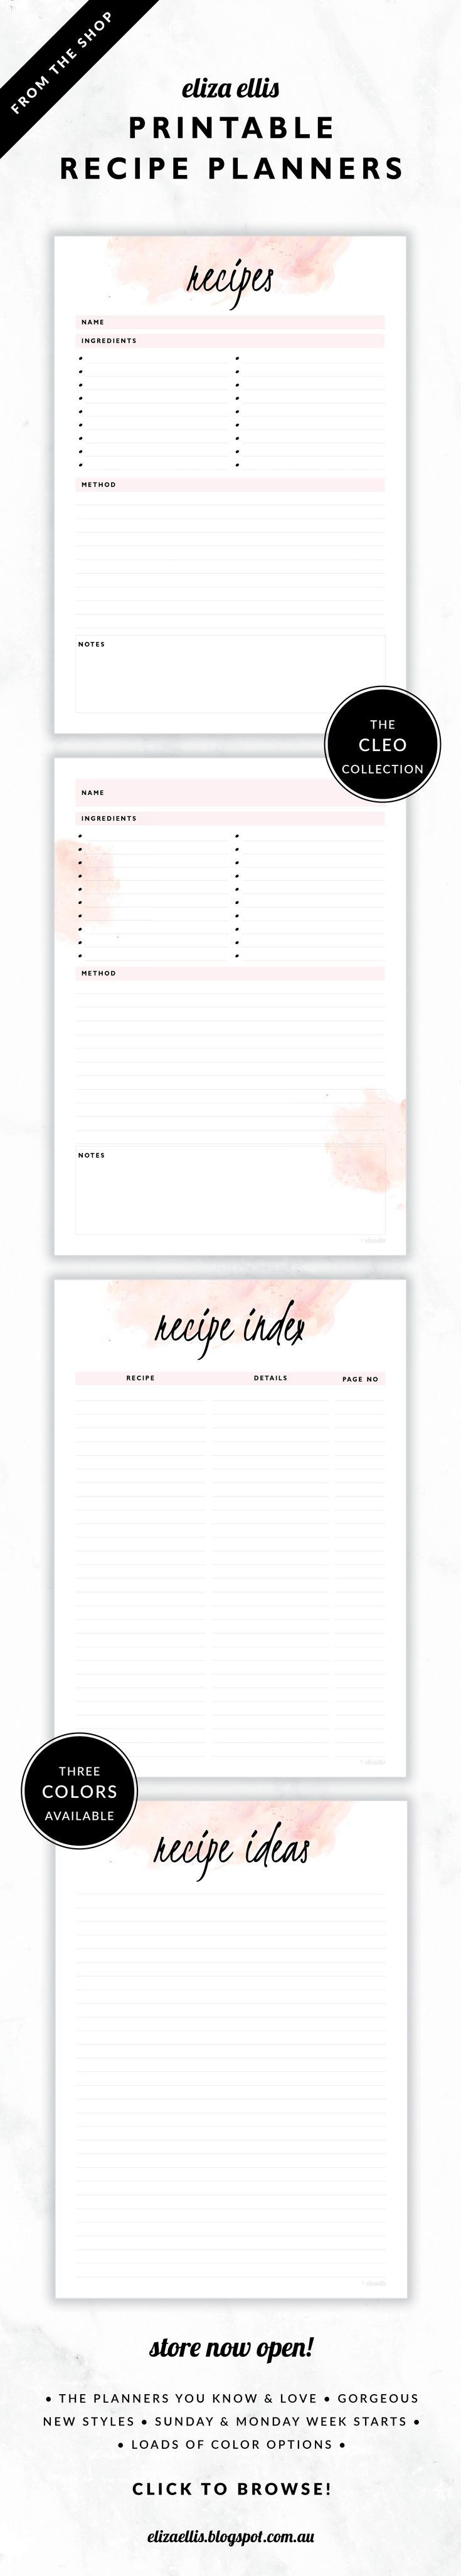 Printable Recipe Pages including Recipe Index and Ideas // The Cleo Collection by Eliza Ellis. Gorgeous watercolor and handwritten type design. Available in 3 colors – fairyfloss, nimbus and sherbet. Documents print to A4 or A5.